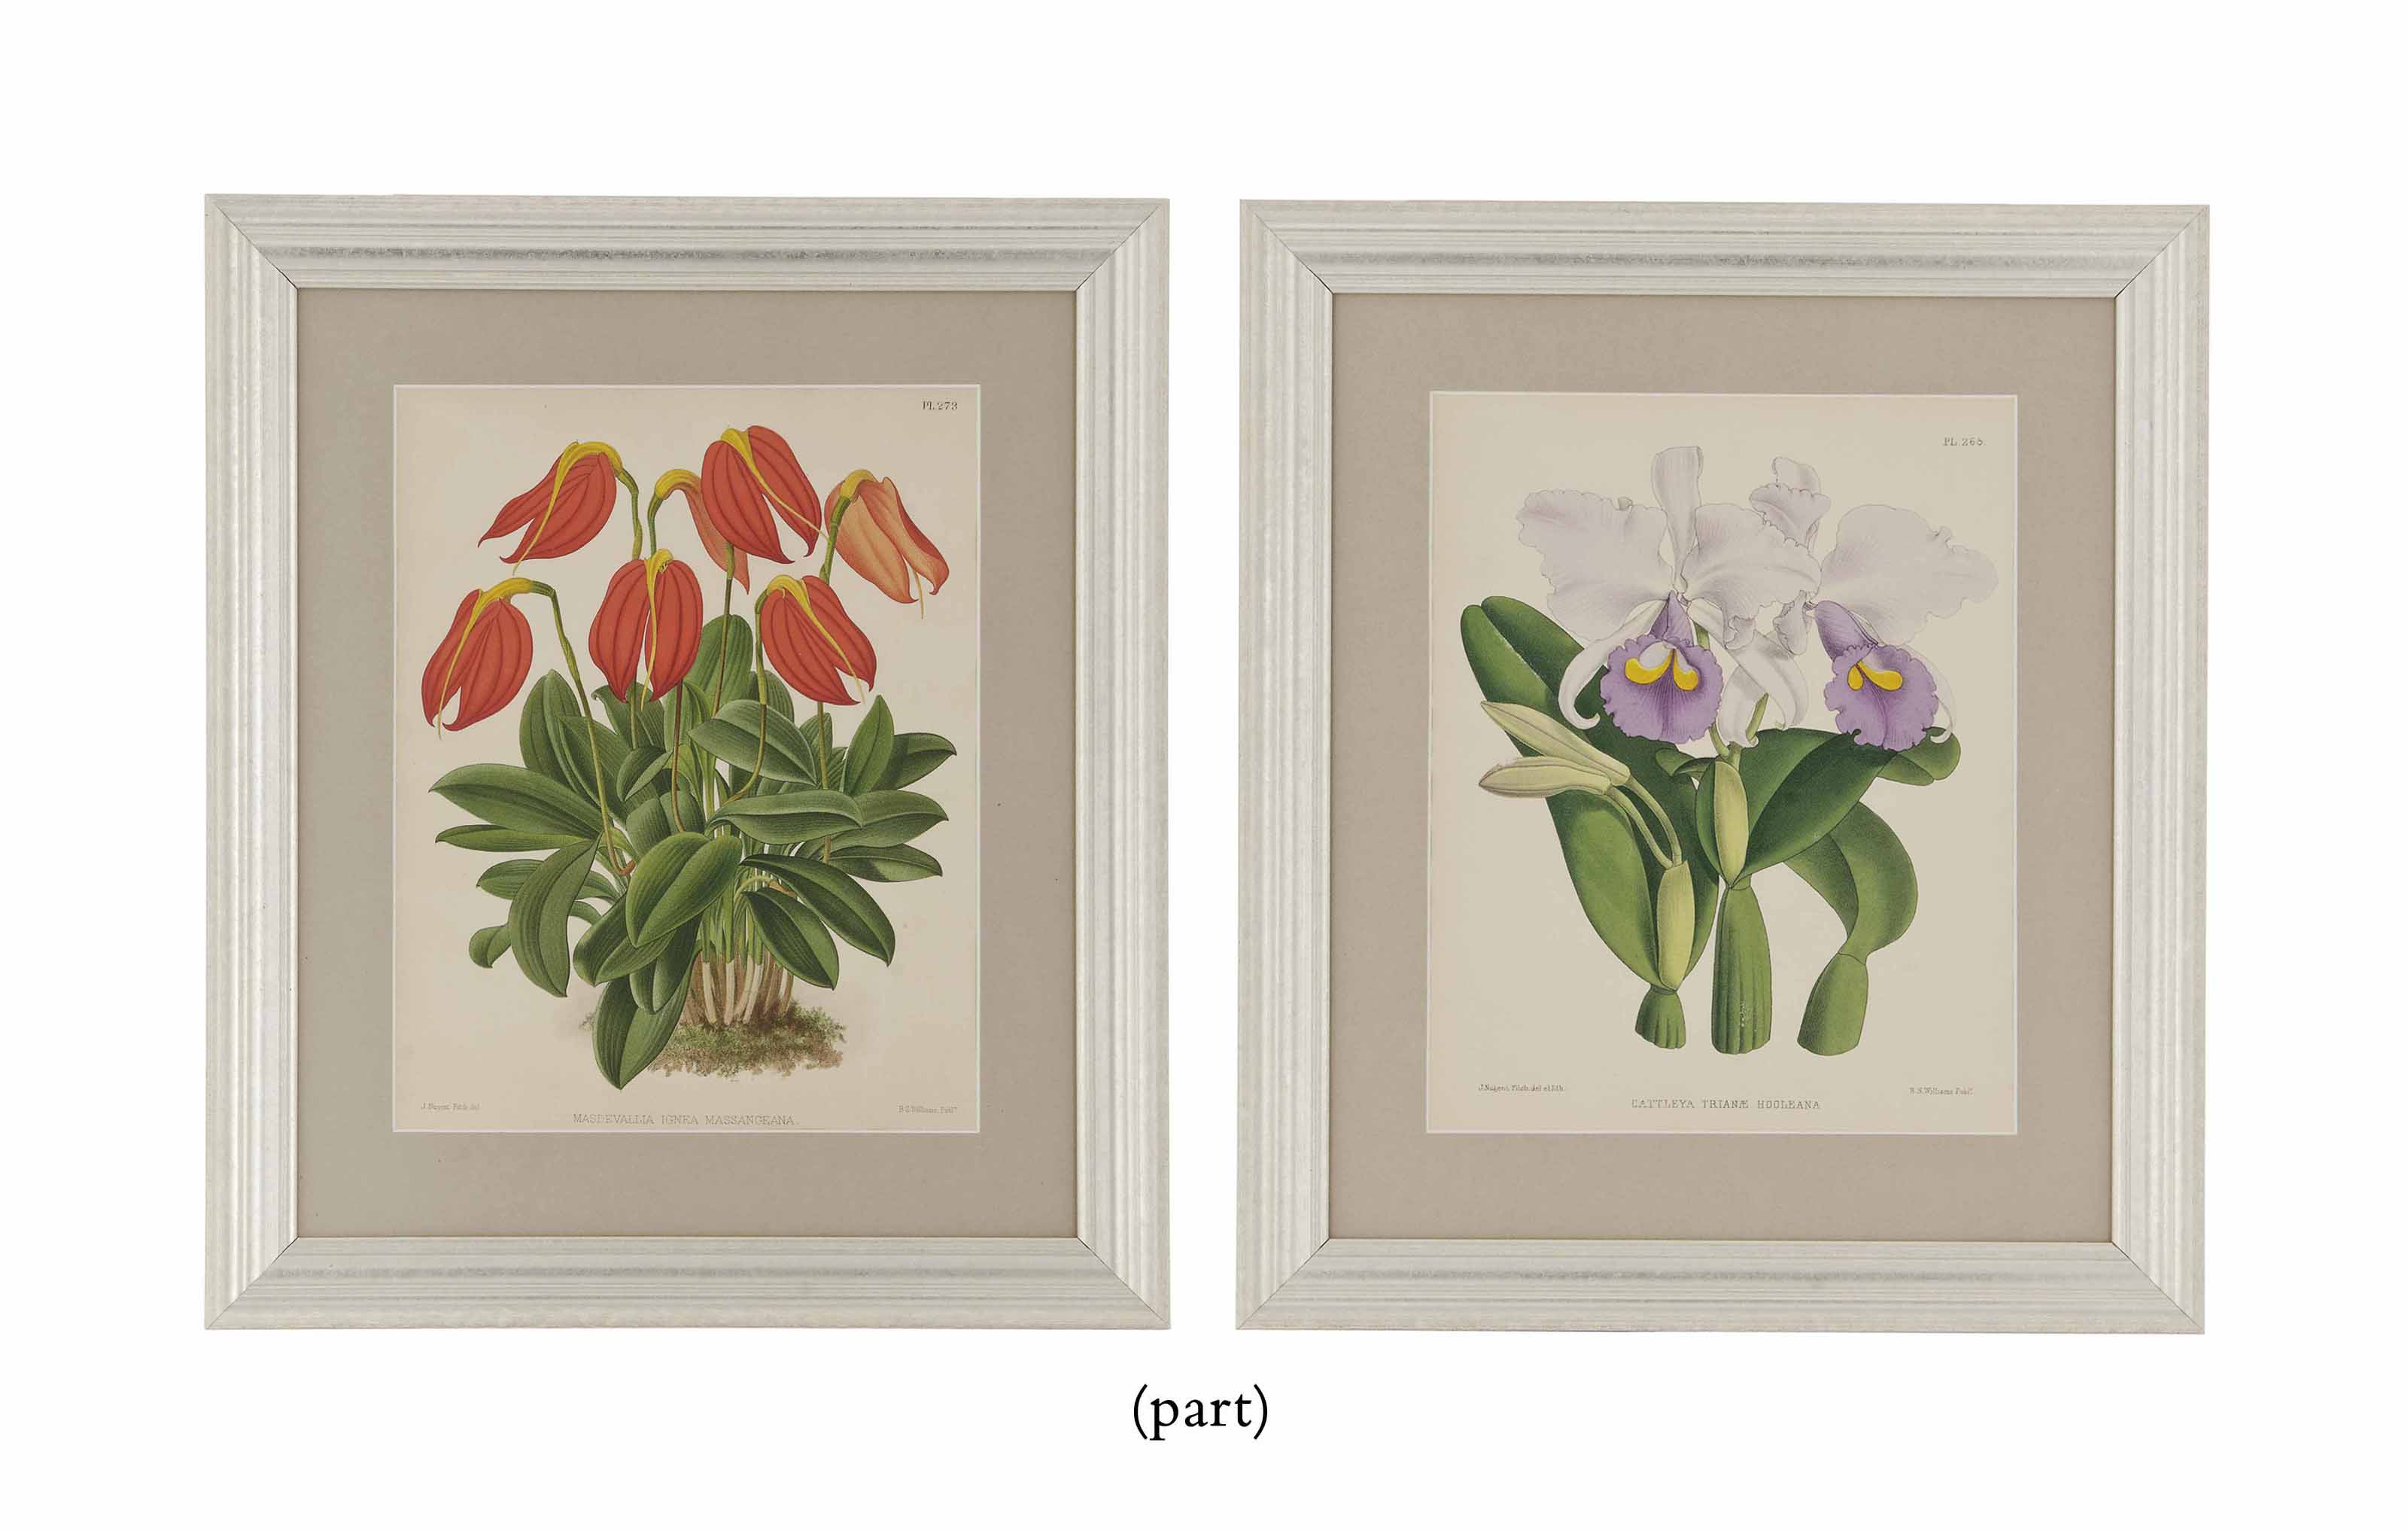 TWELVE HAND-COLOURED LITHOGRAPHS FROM THE ORCHID ALBUM EDITED BY ROBERT WARNER